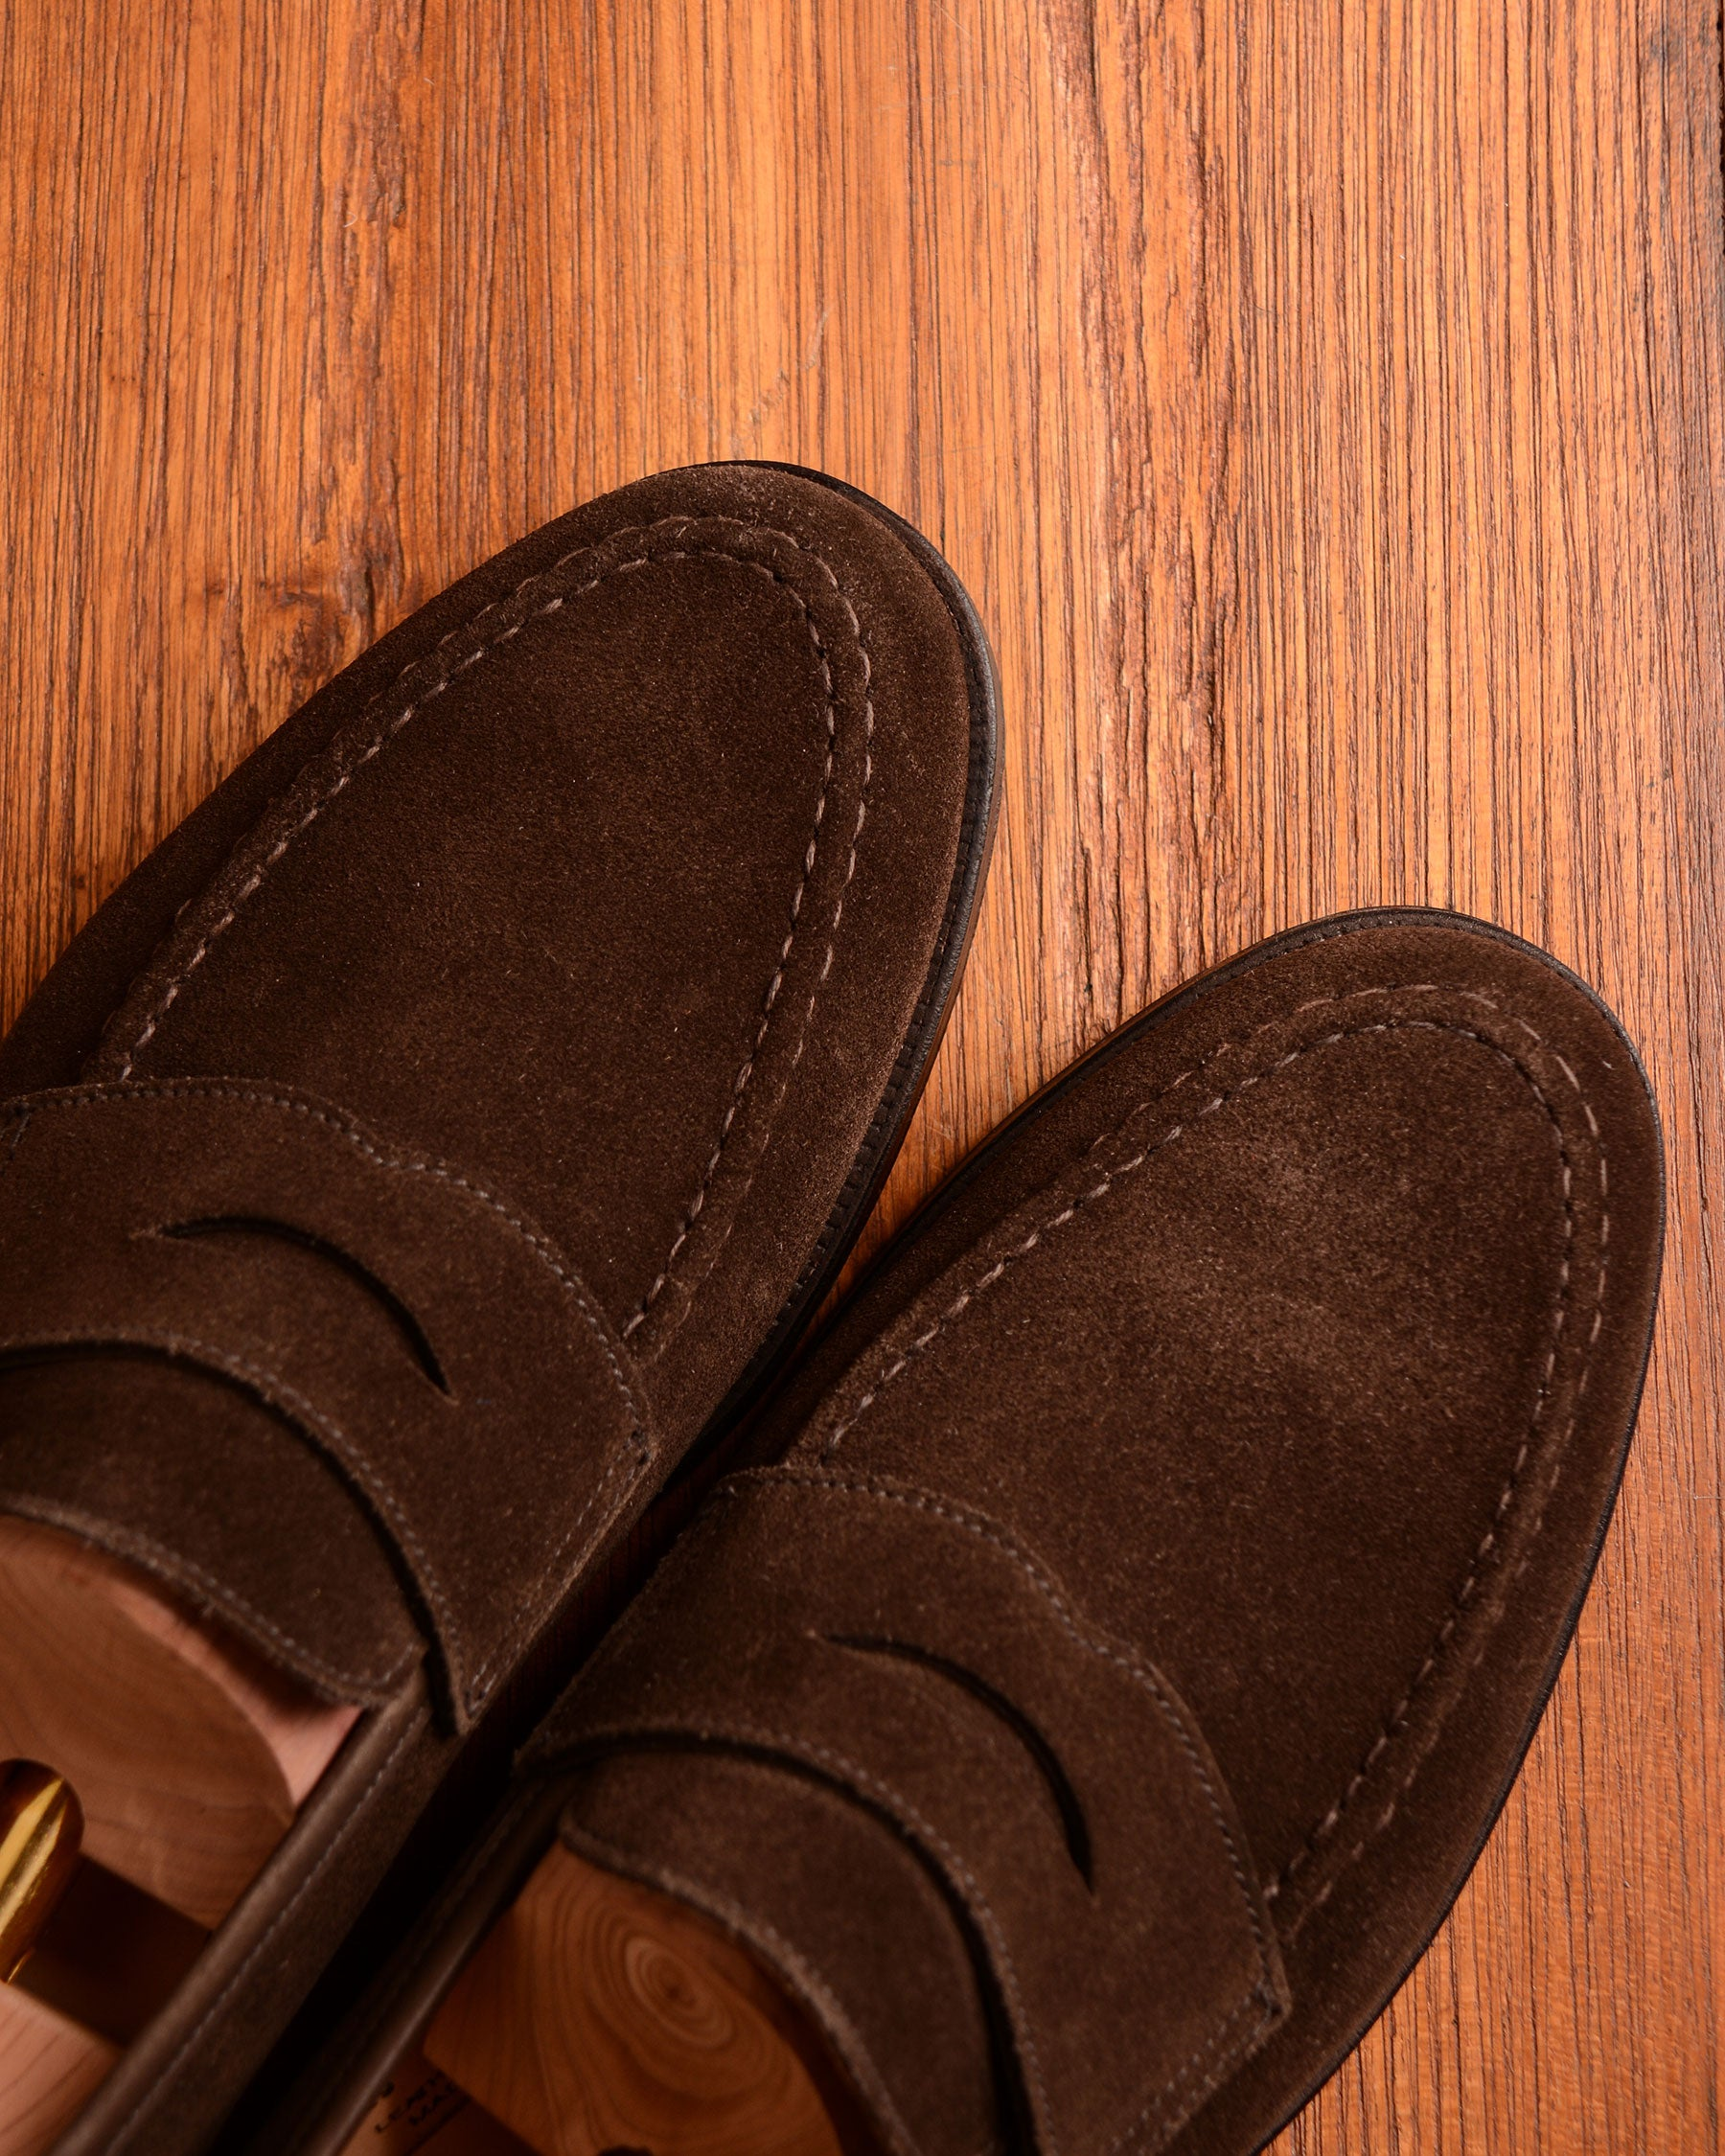 Crockett & Jones Boston - Dark Brown Suede